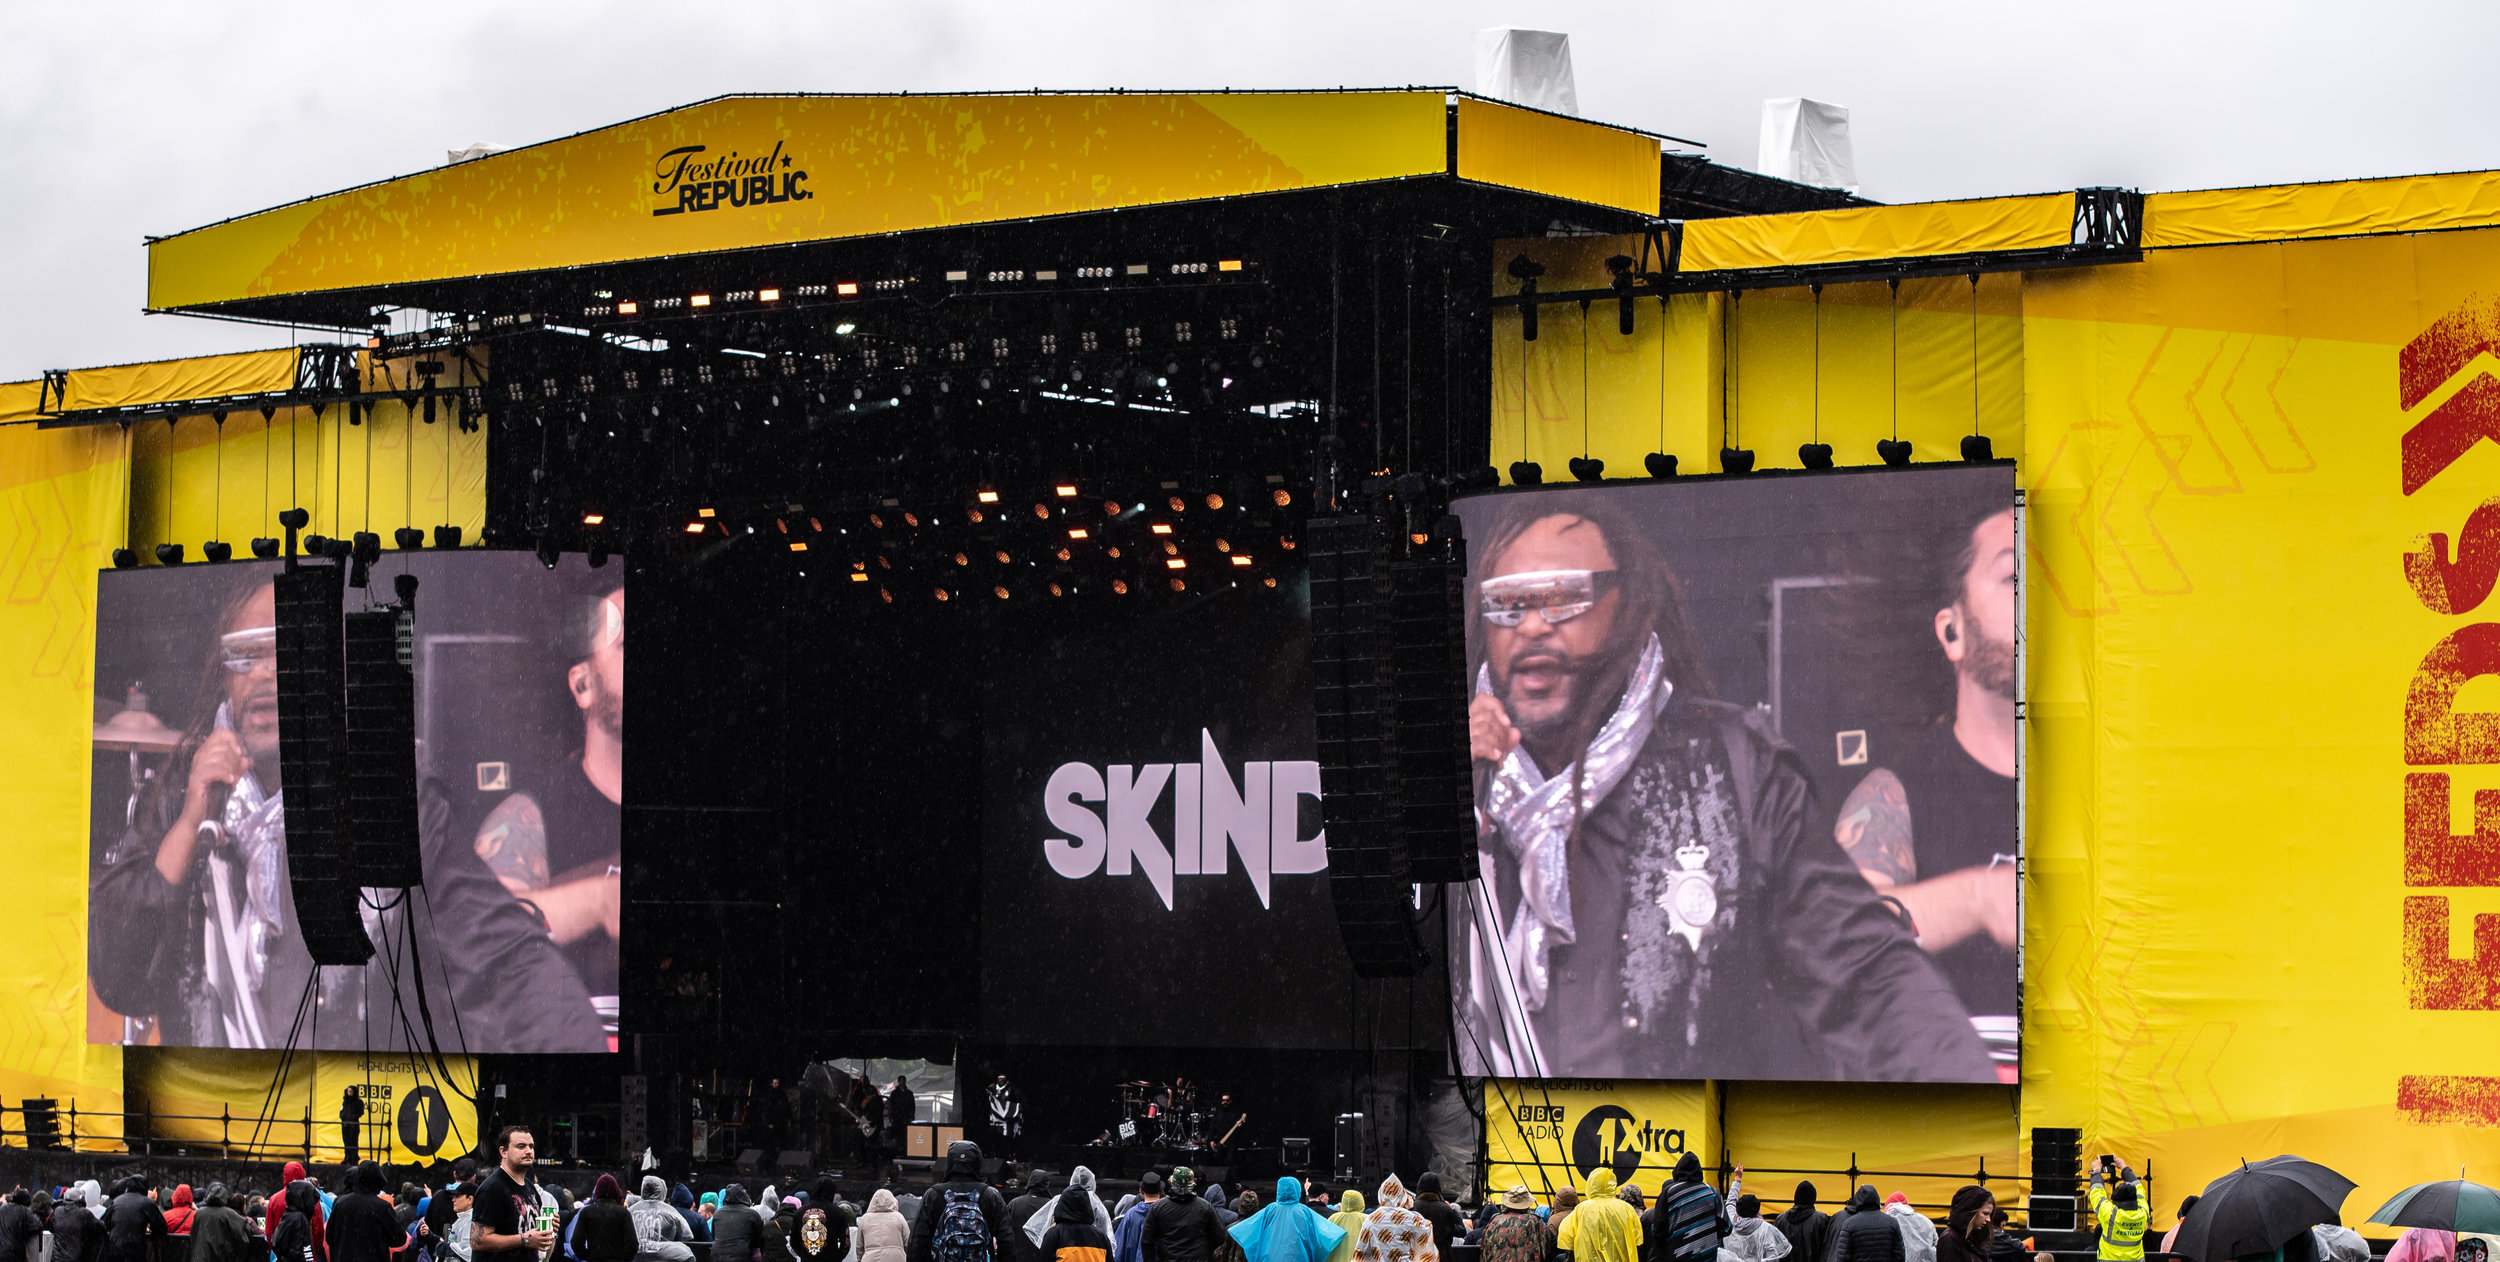 SKINDRED PERFORMING ON THE MAIN-STAGE AT THE LAST DAY OF LEEDS FESTIVAL 2018 - 26.08.2018  PICTURE BY: CALUM BUCHAN PHOTOGRAPHY